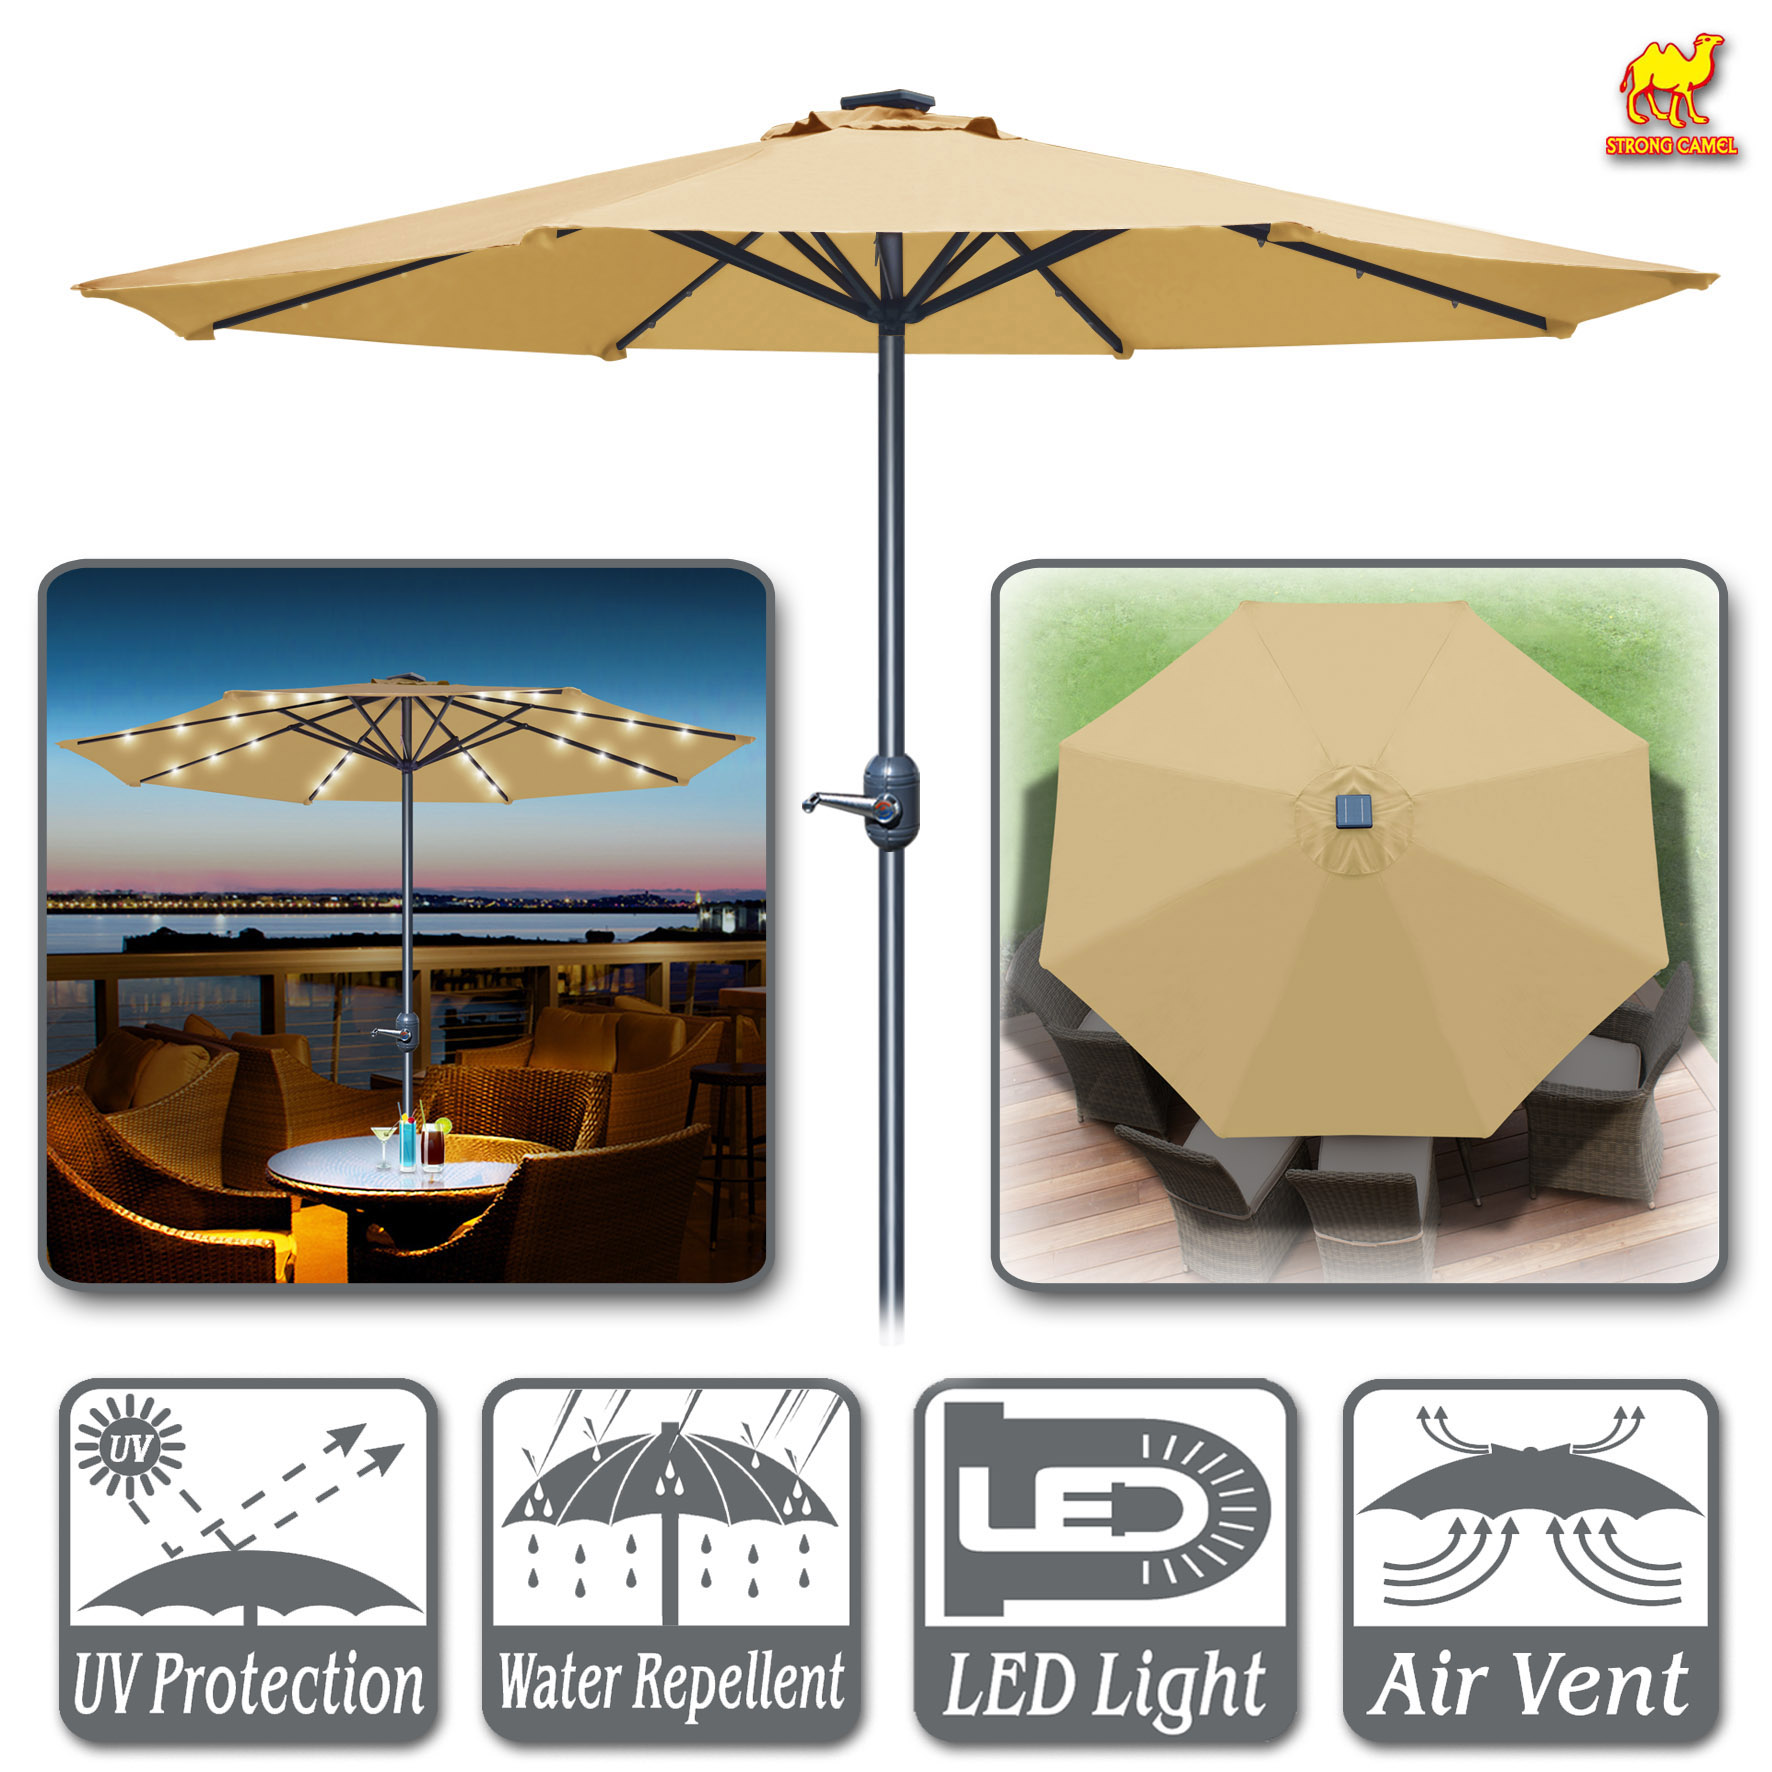 Strong Camel 9' Aluminum Solar Powered Patio Umbrella 24 LED Light Parasol Sunshade with Crank (Beige)